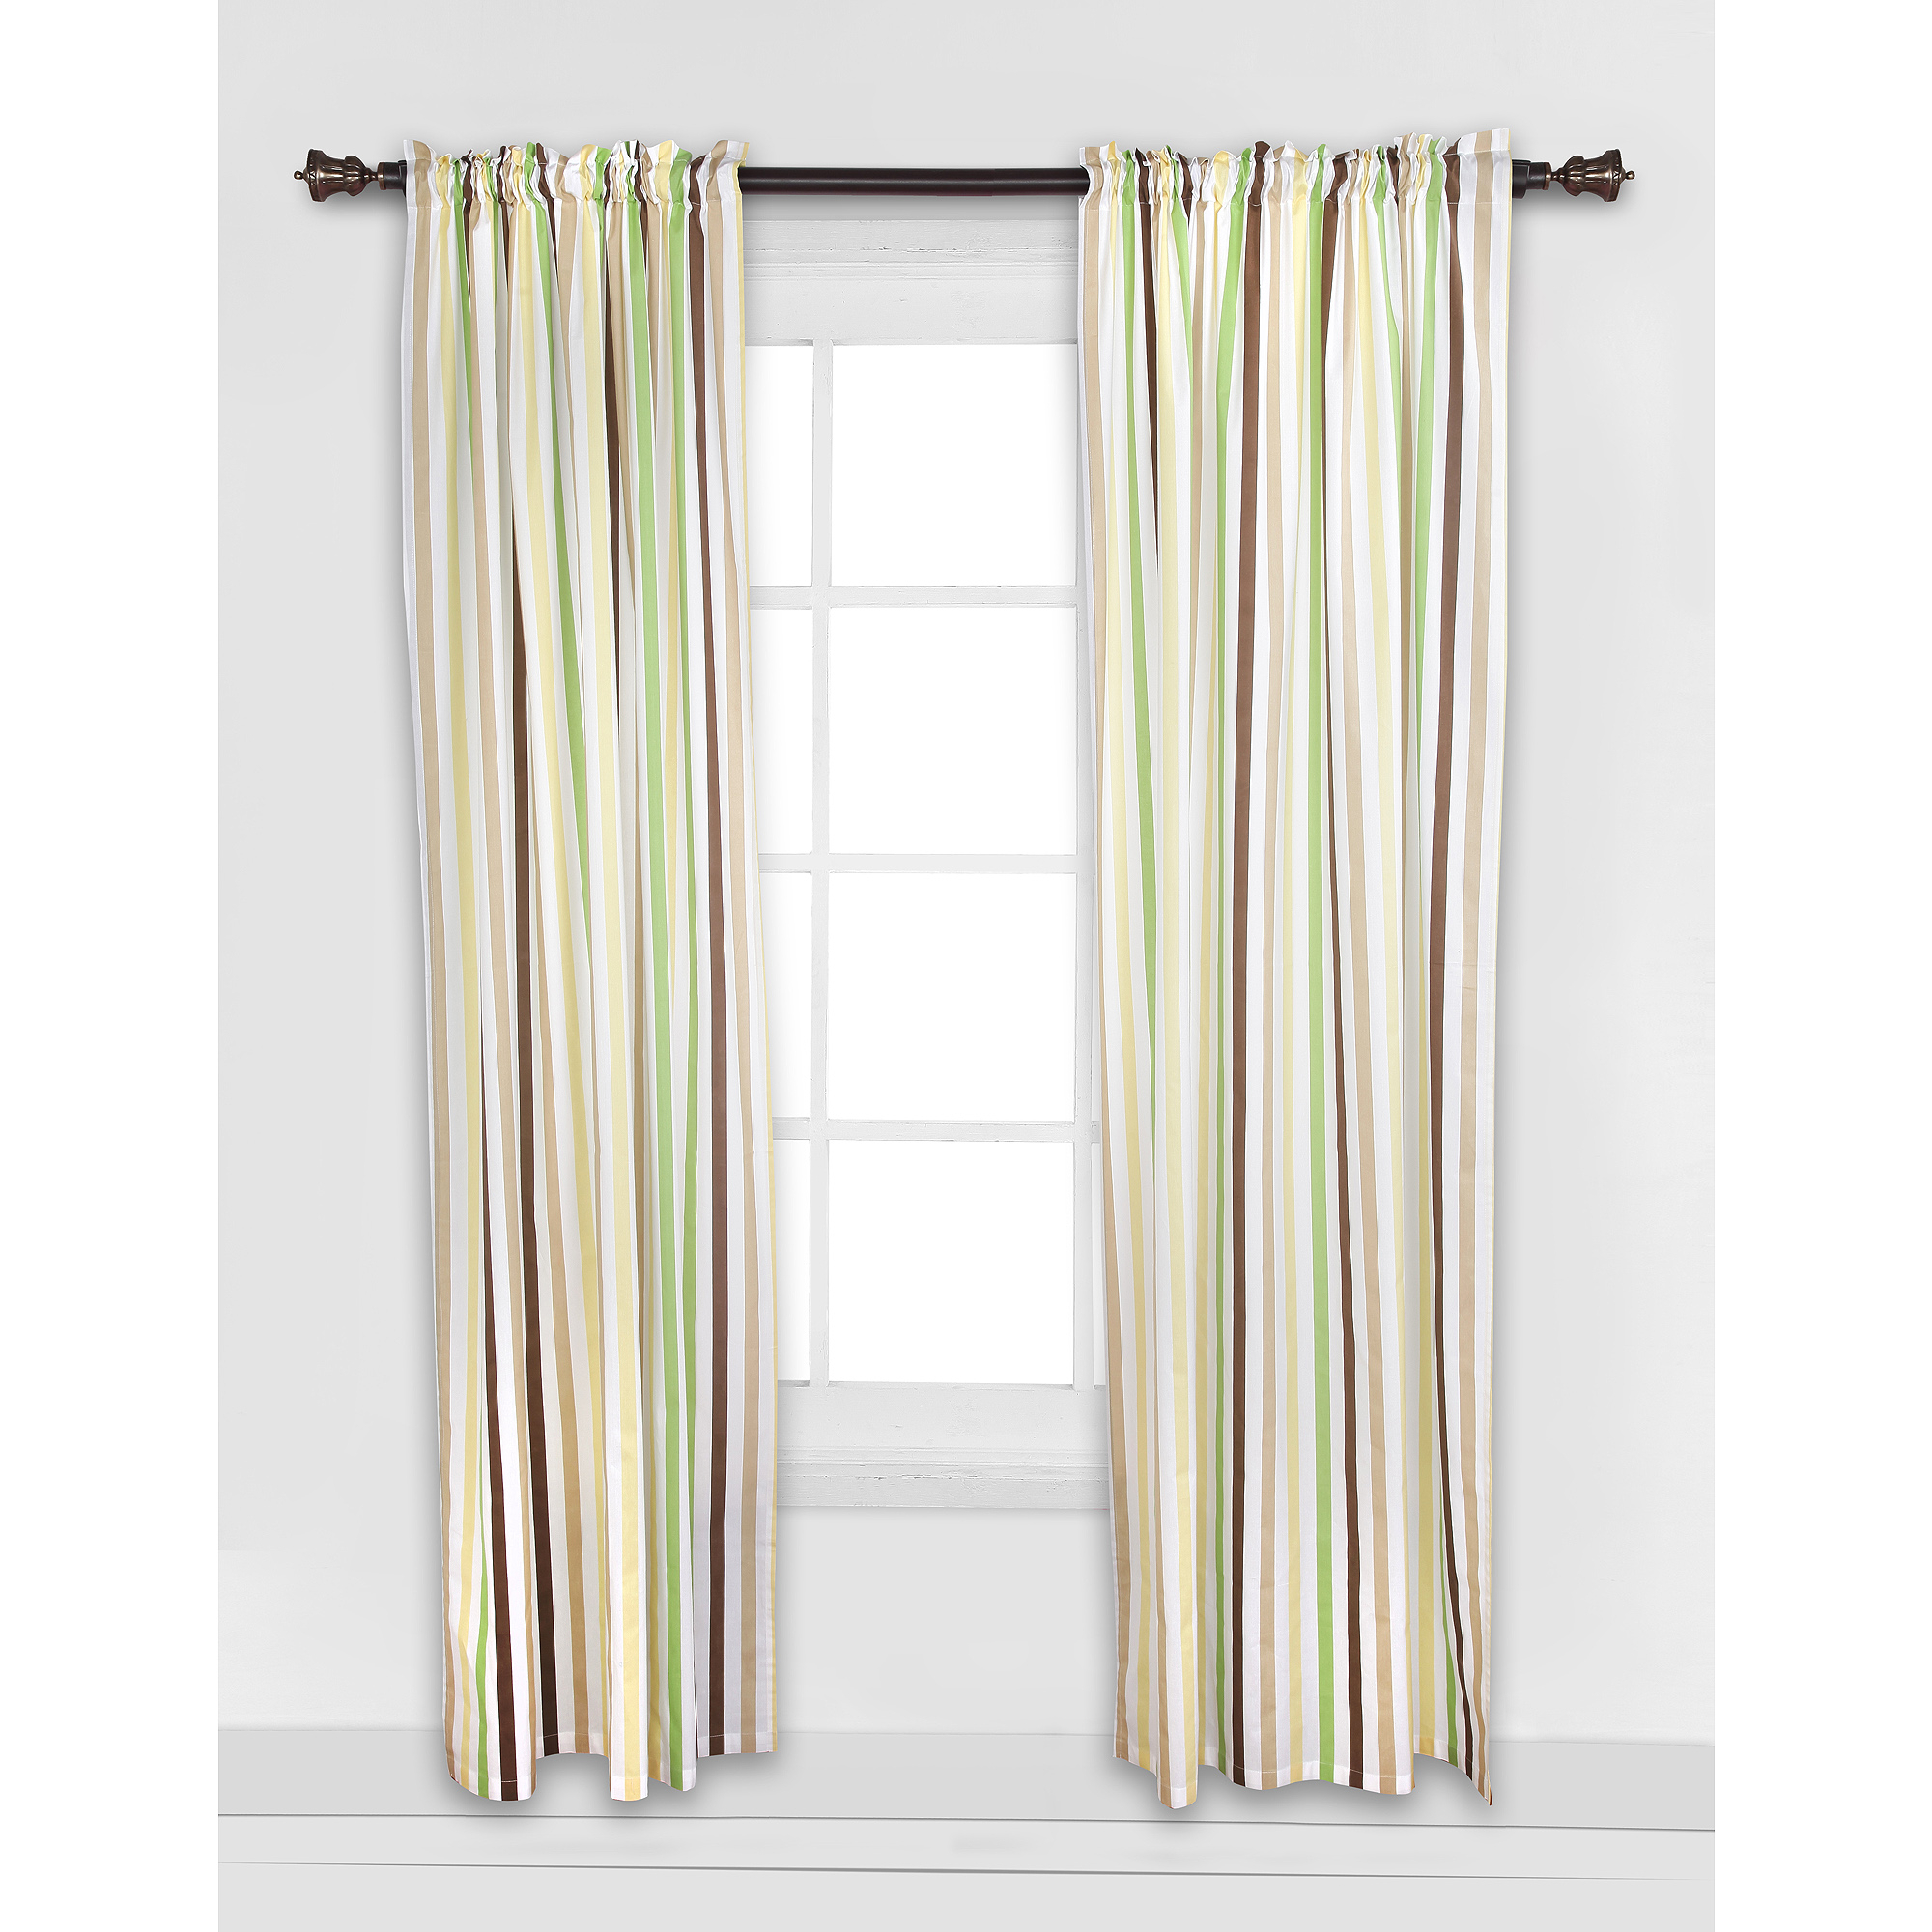 Latest Ivory Micro Striped Semi Sheer Window Curtain Pieces Intended For Bed Bath N More Ivory Micro Striped Semi Sheer Window Curtain Pieces –  Tiers, Valance And Swag Options (Gallery 13 of 20)